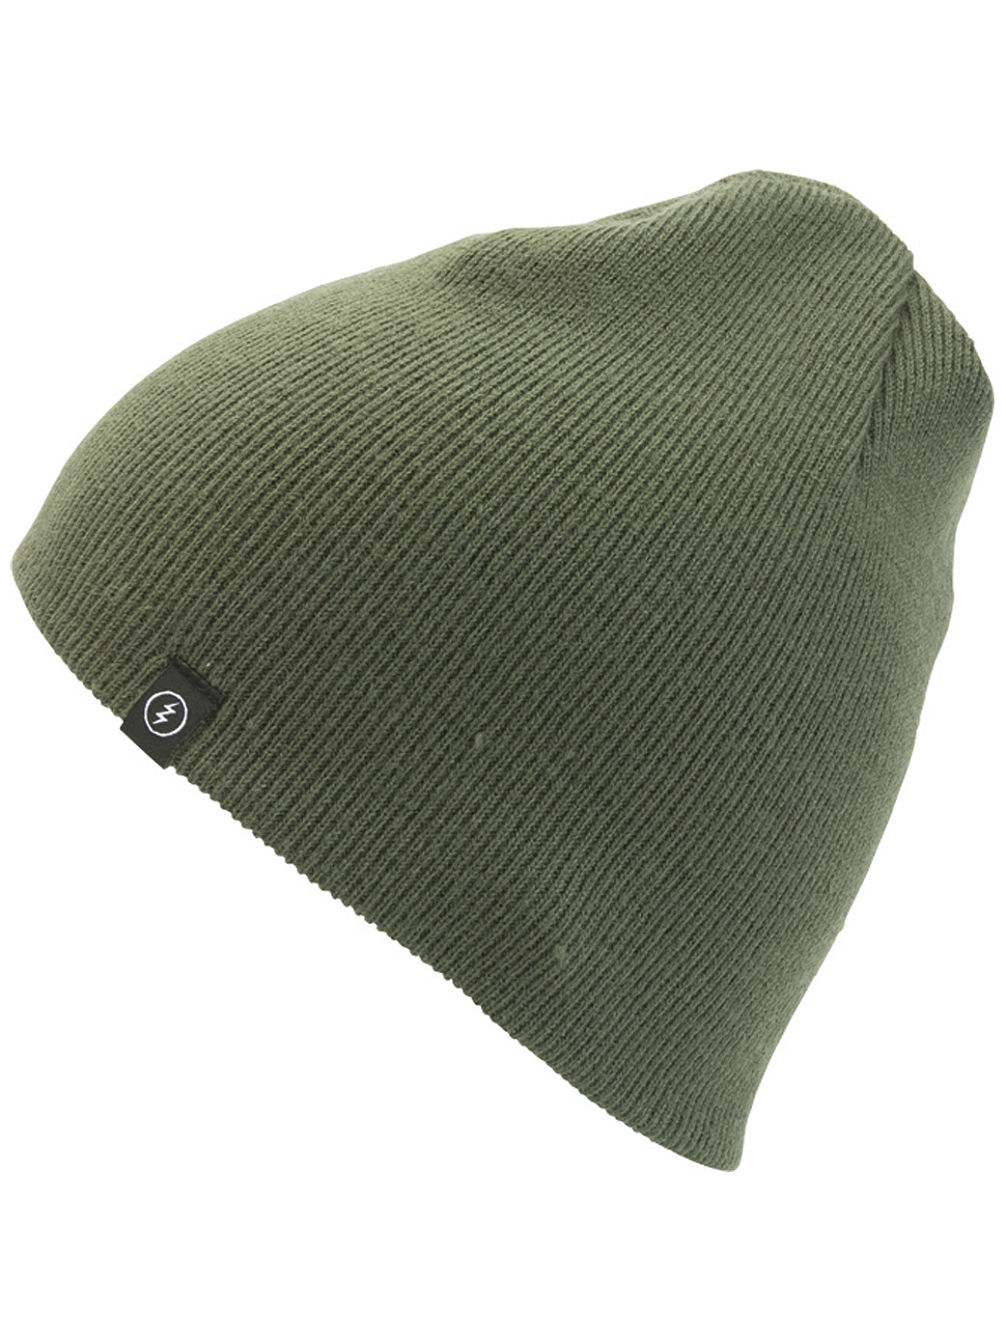 Buy Electric Bender II Beanie online at blue-tomato.com f76b473ad14